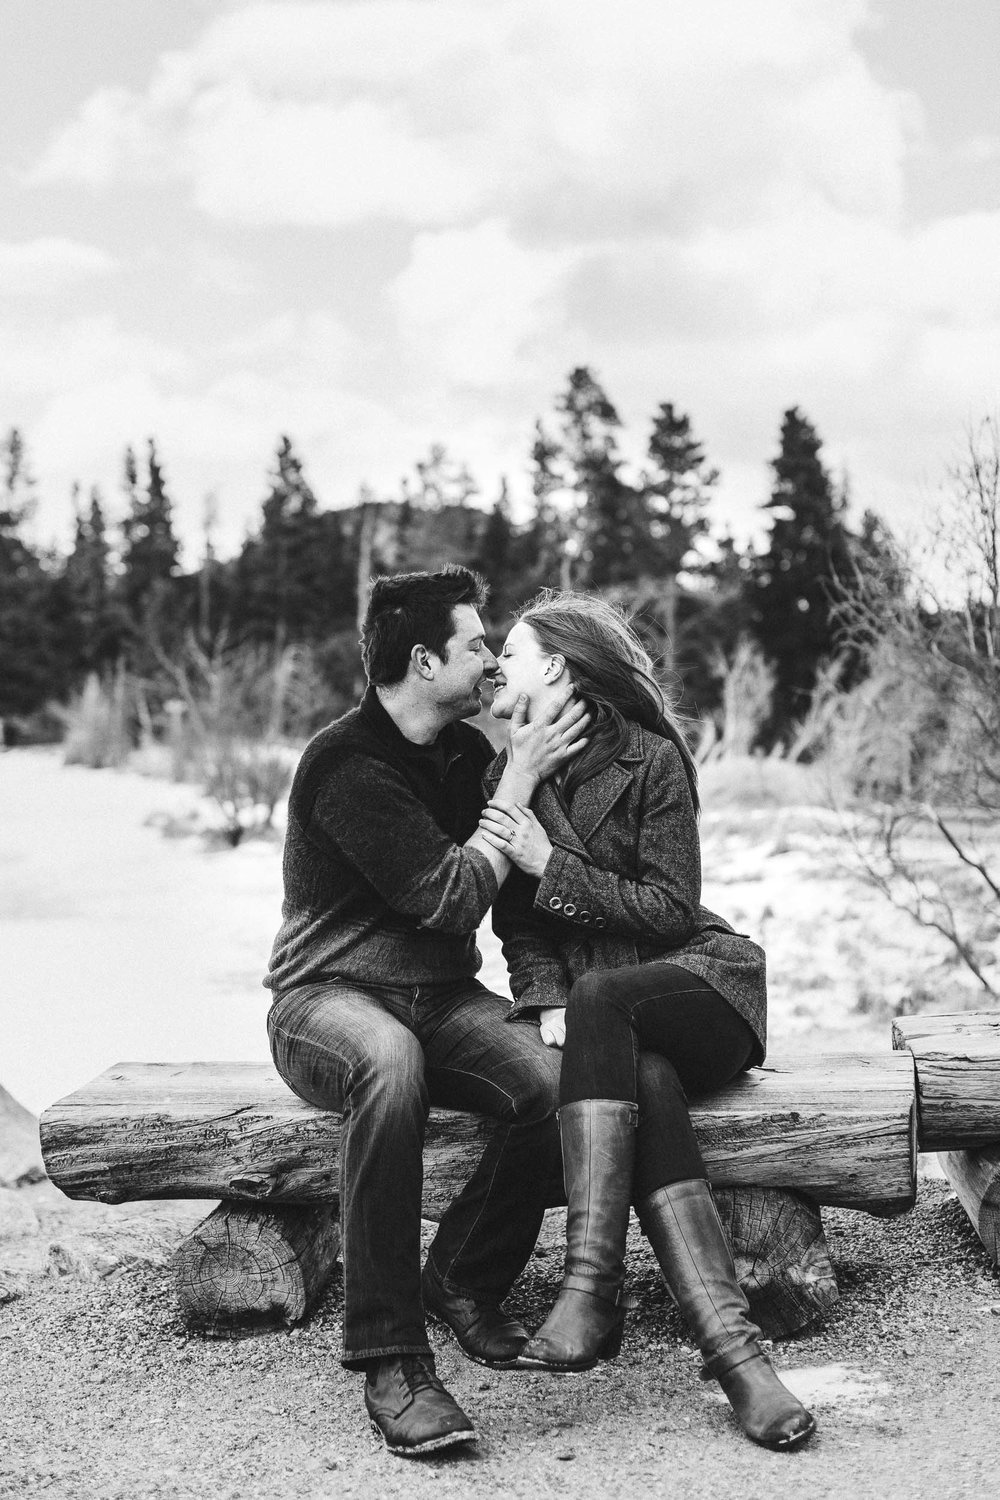 Winter-engagement-photo-session-in-Rocky-Mountain-National-Park-74.jpg